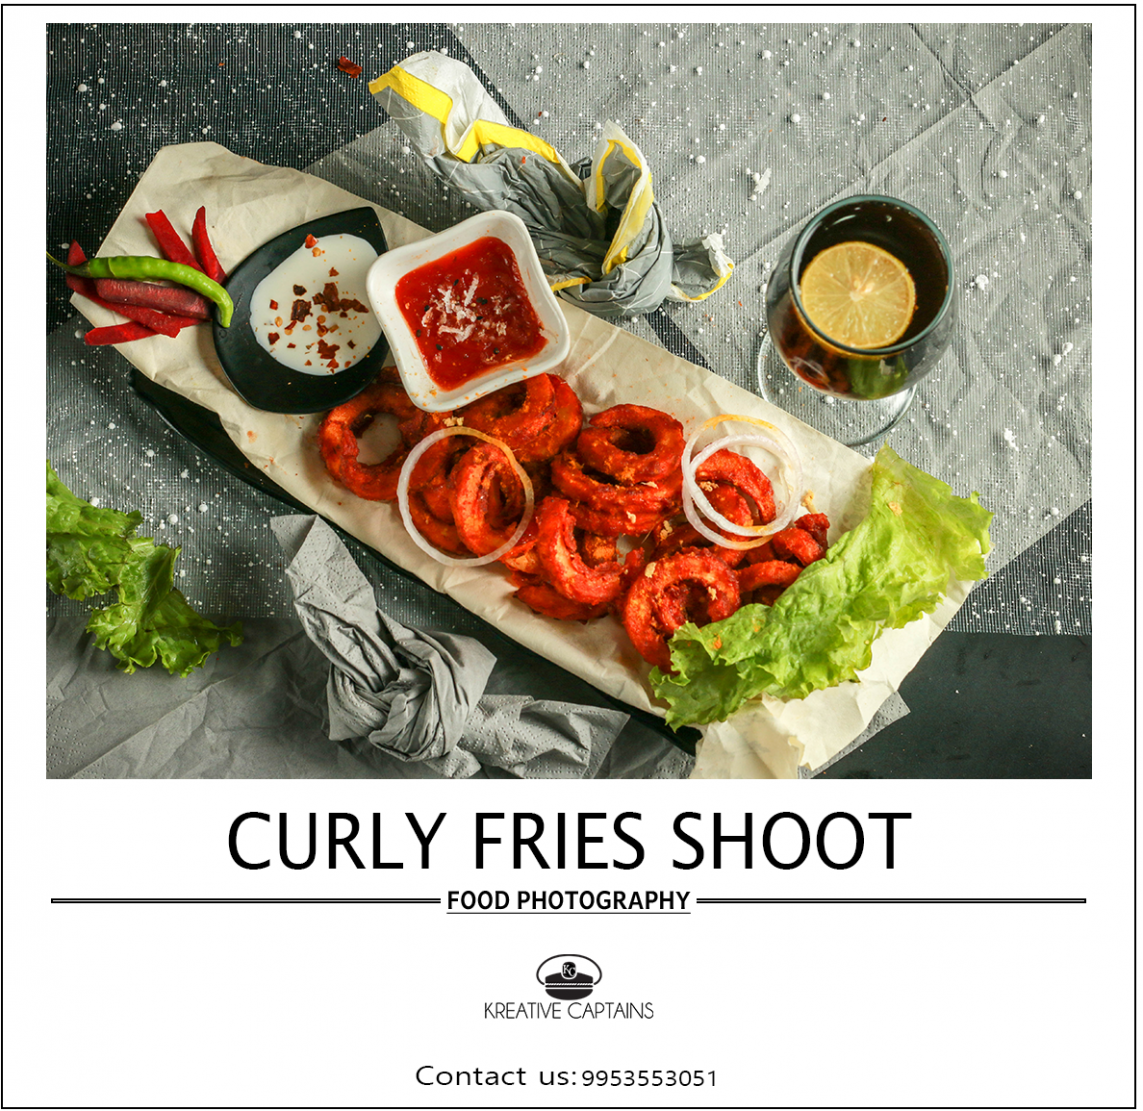 CURLY FRIES SHOOT